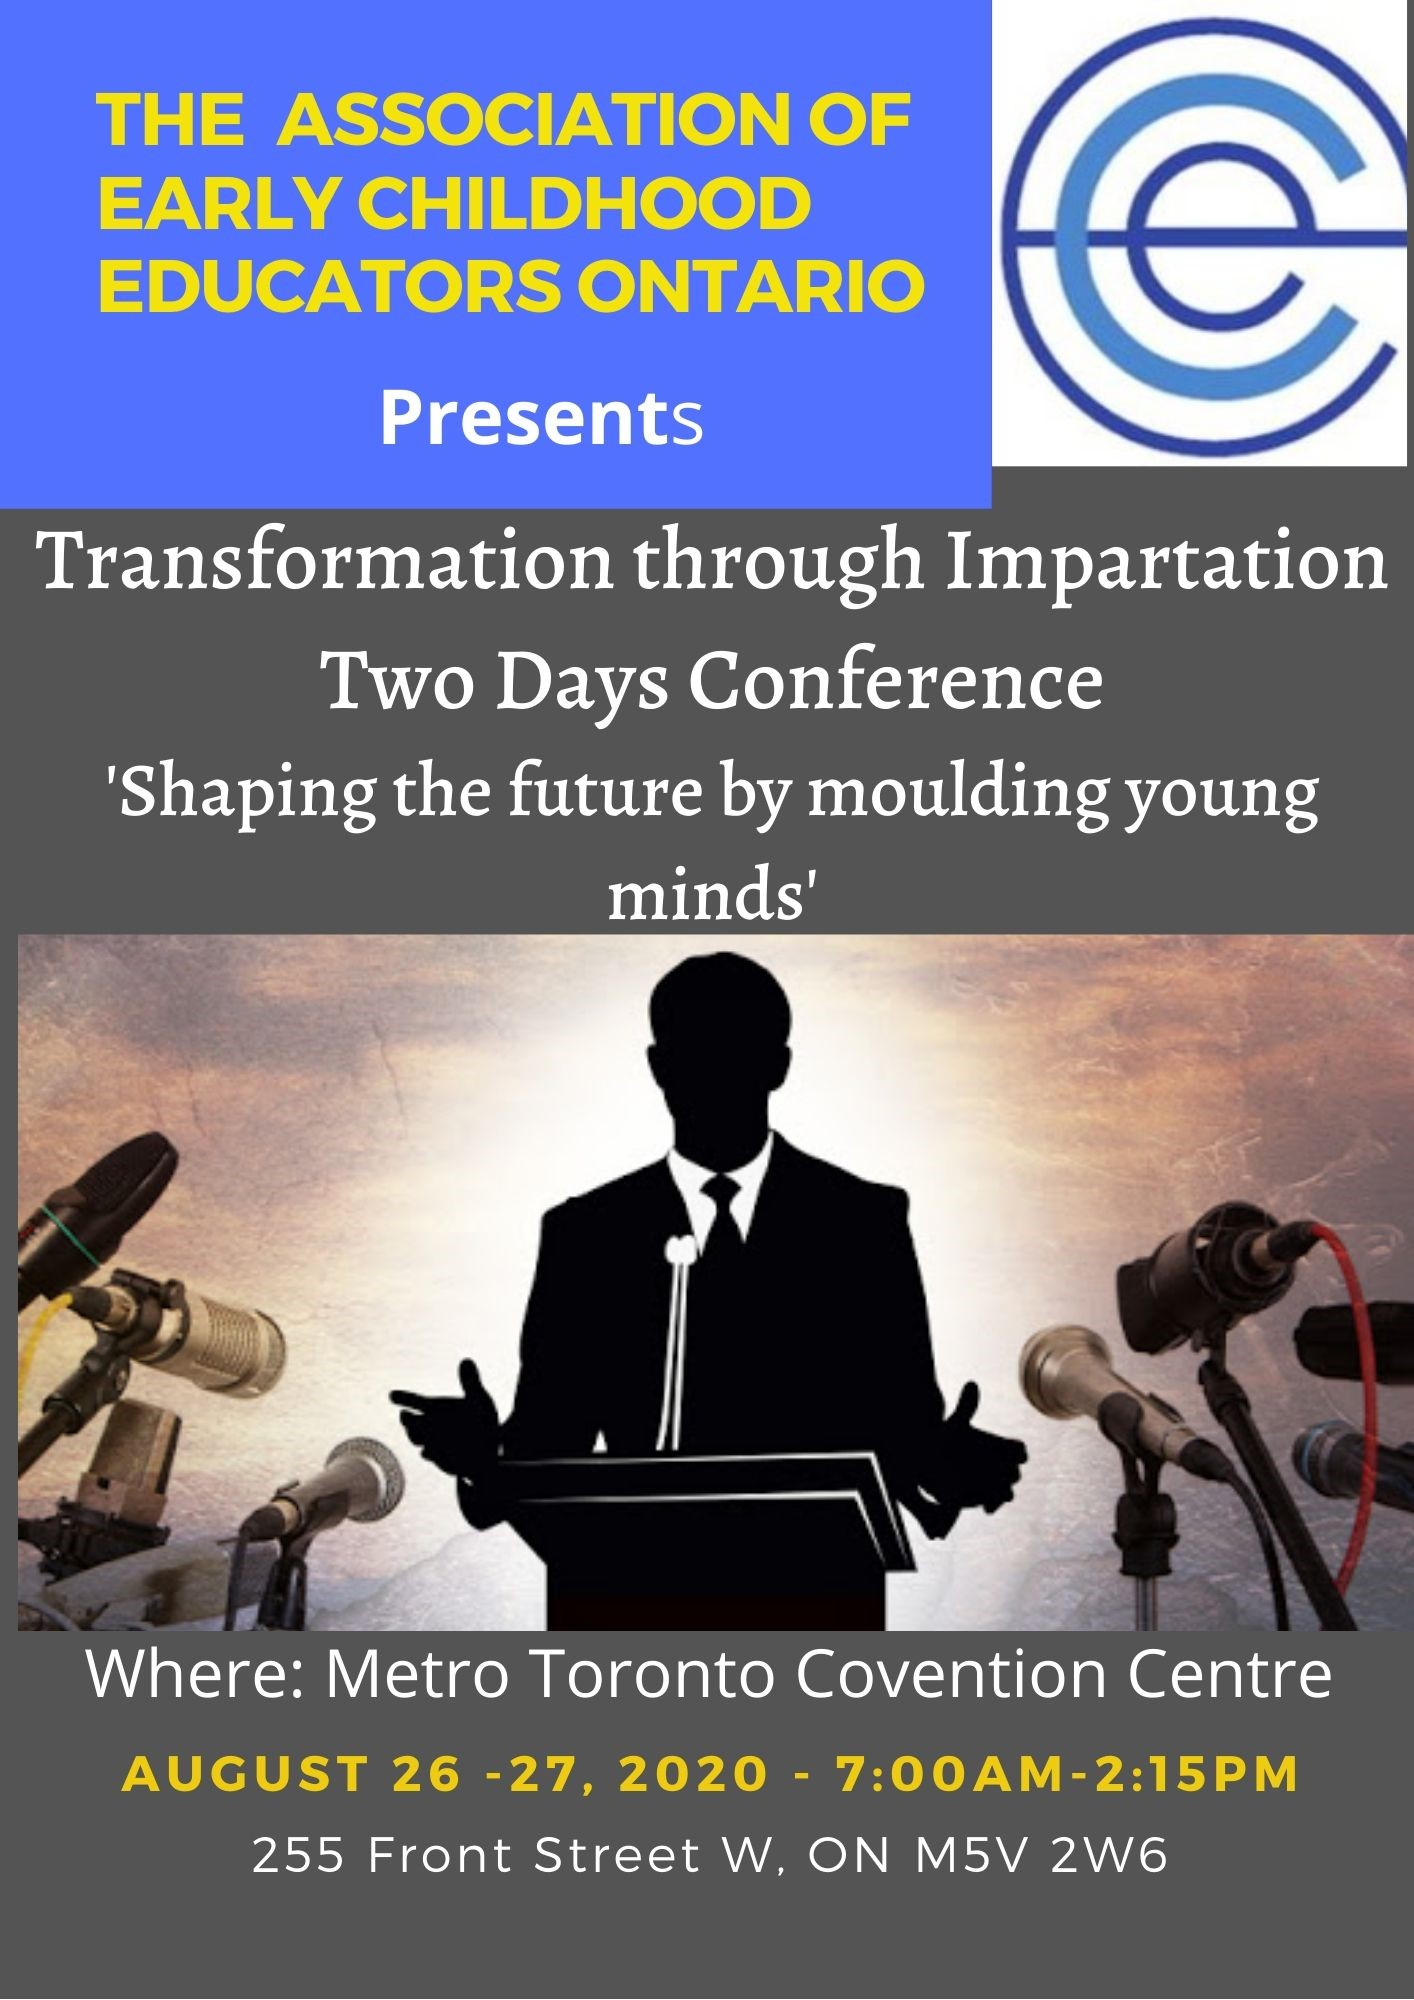 The Association of Early Childhood Educators Ontario Presents Transformation through Impartation Two Days Confere on Aug 26, 07:00@Metro Toronto Convention Centre - Buy tickets and Get information on Morgan Events